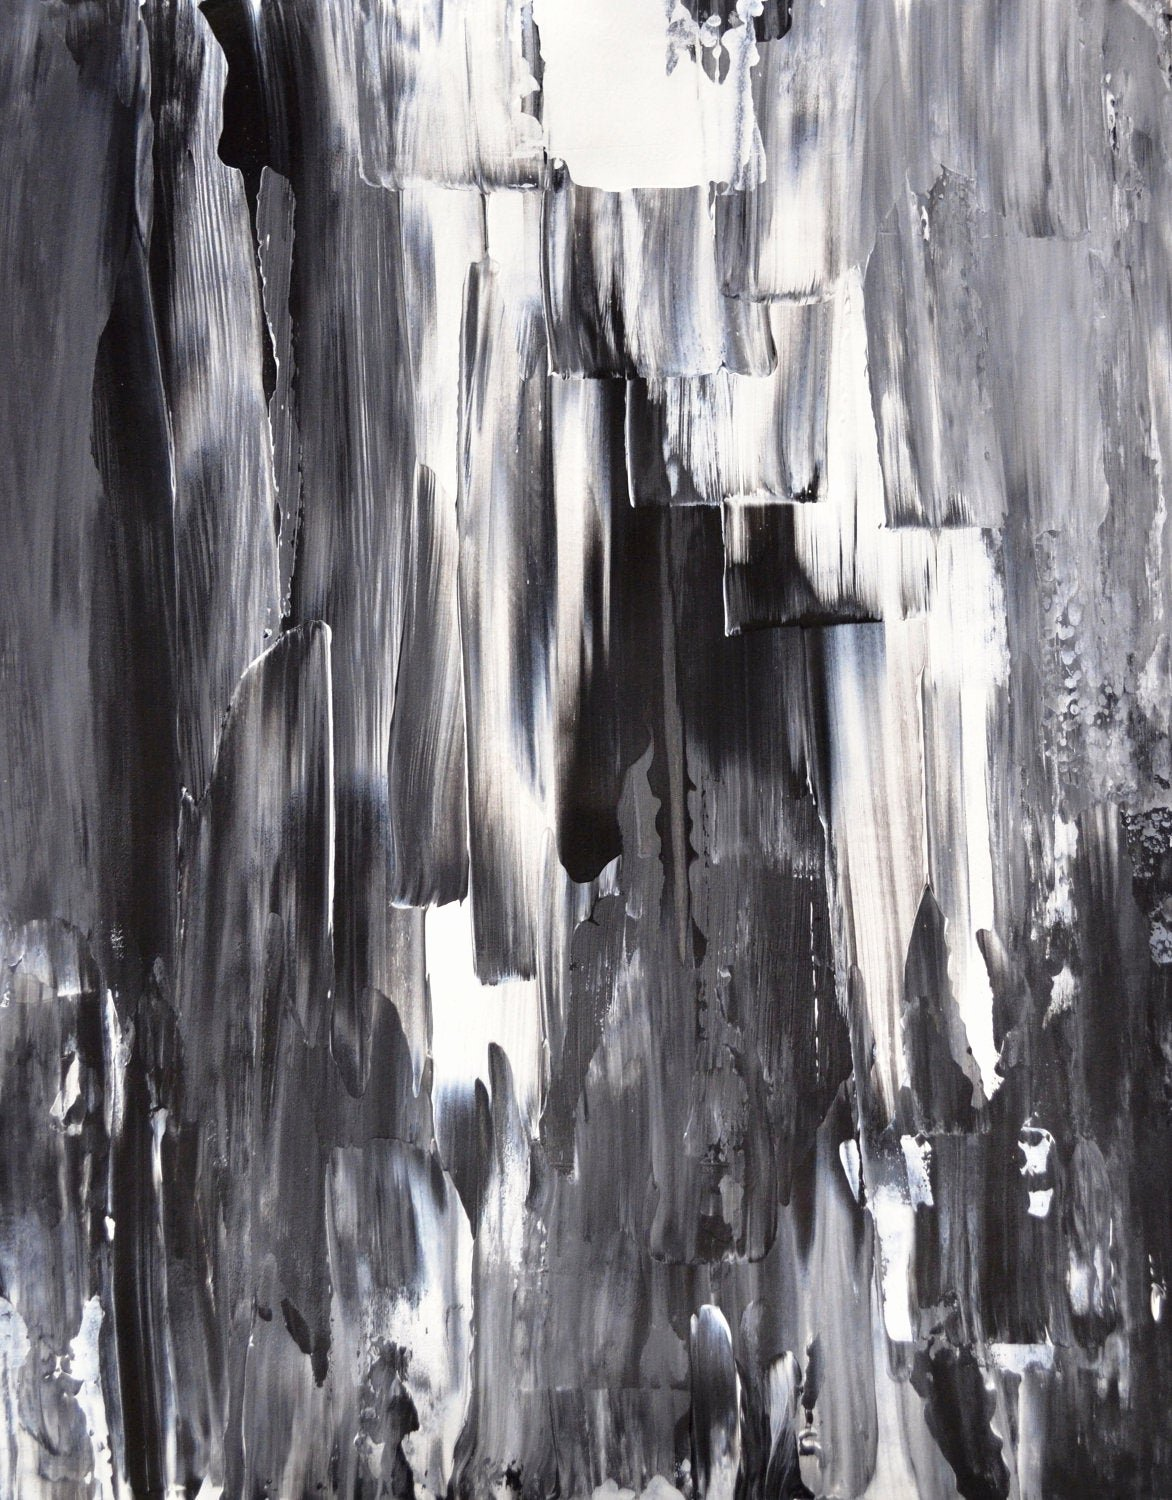 Black and White Abstract Painting Inspirational Acrylic Abstract Art Painting Black White Grey Modern